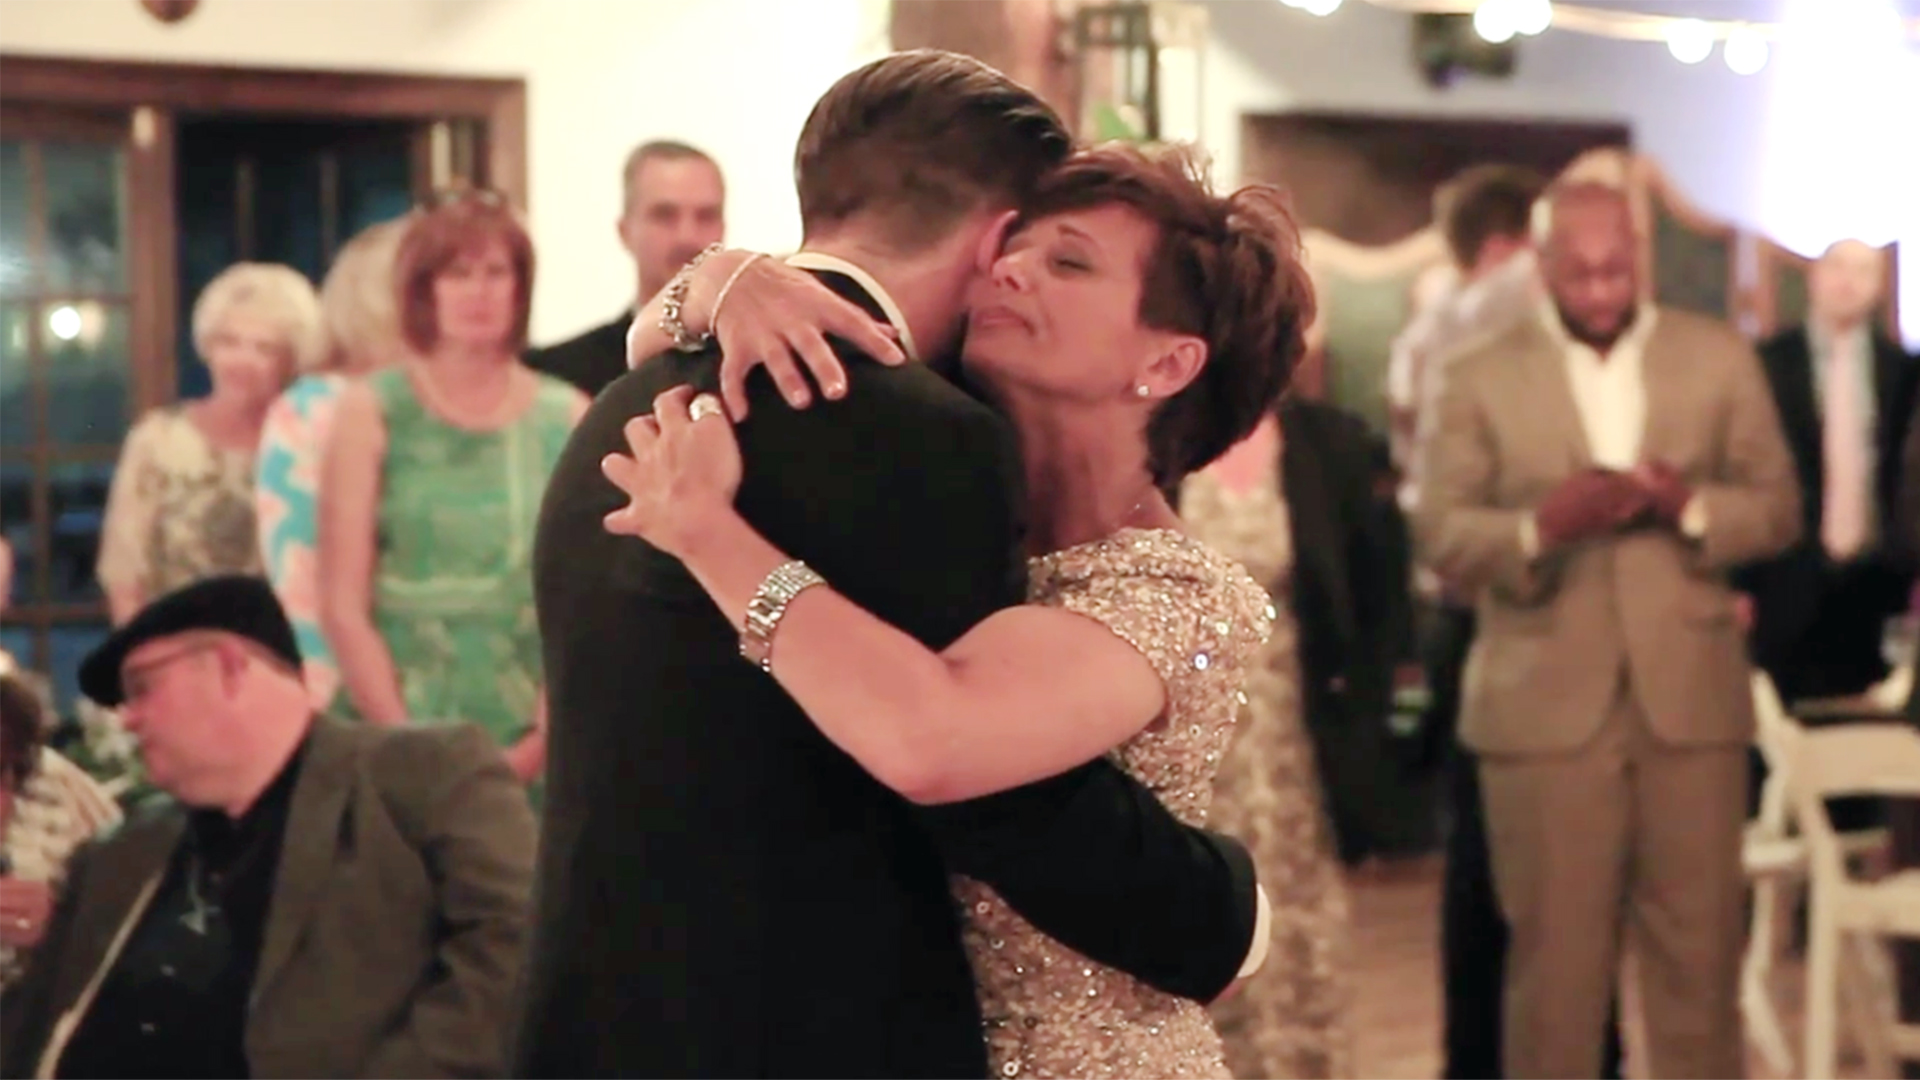 How This Mom With MS Danced With Her Son At His Wedding